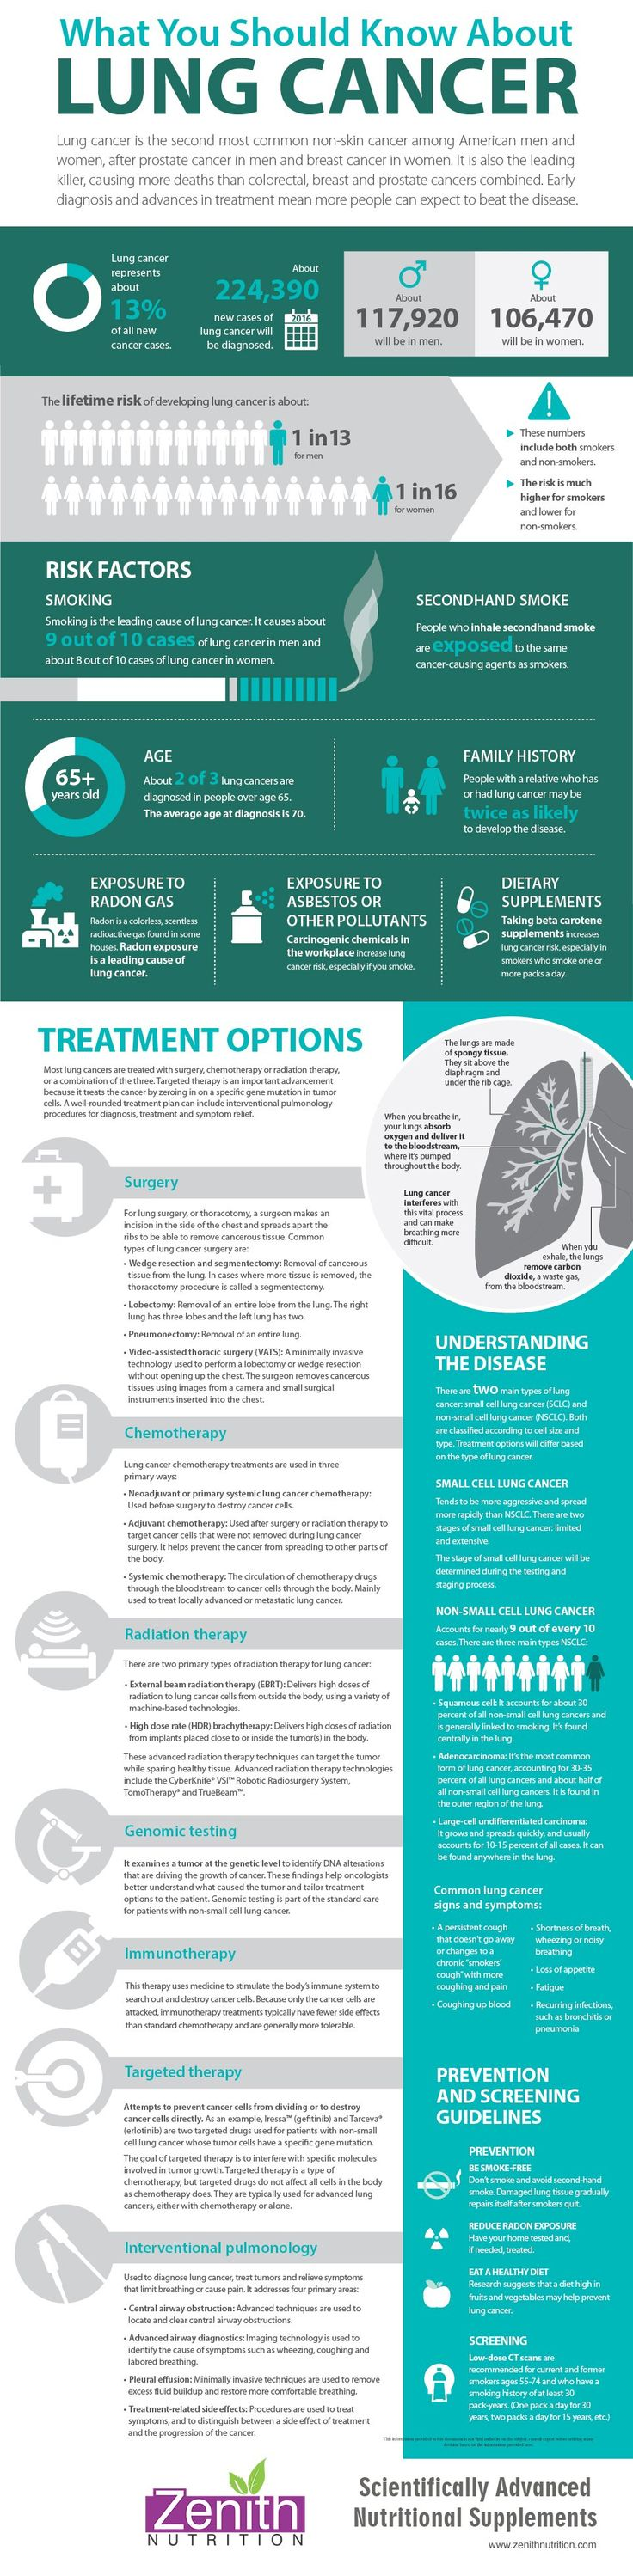 What You Should Know About Lung Cancer. Risk factors - smoking, family history, age, exposure to radon gas, expose to asbestes or other pollutants, dietary supplements. Treatment options - surgery, chemotherapy, radiation therapy, genomic testing, immuno therapy, targeted therapy, interventional pulmonology. Prevention and screening guidlines. Best supplements from Zenith Nutrition. Health Supplements. Nutritional Supplements. Health Infographics